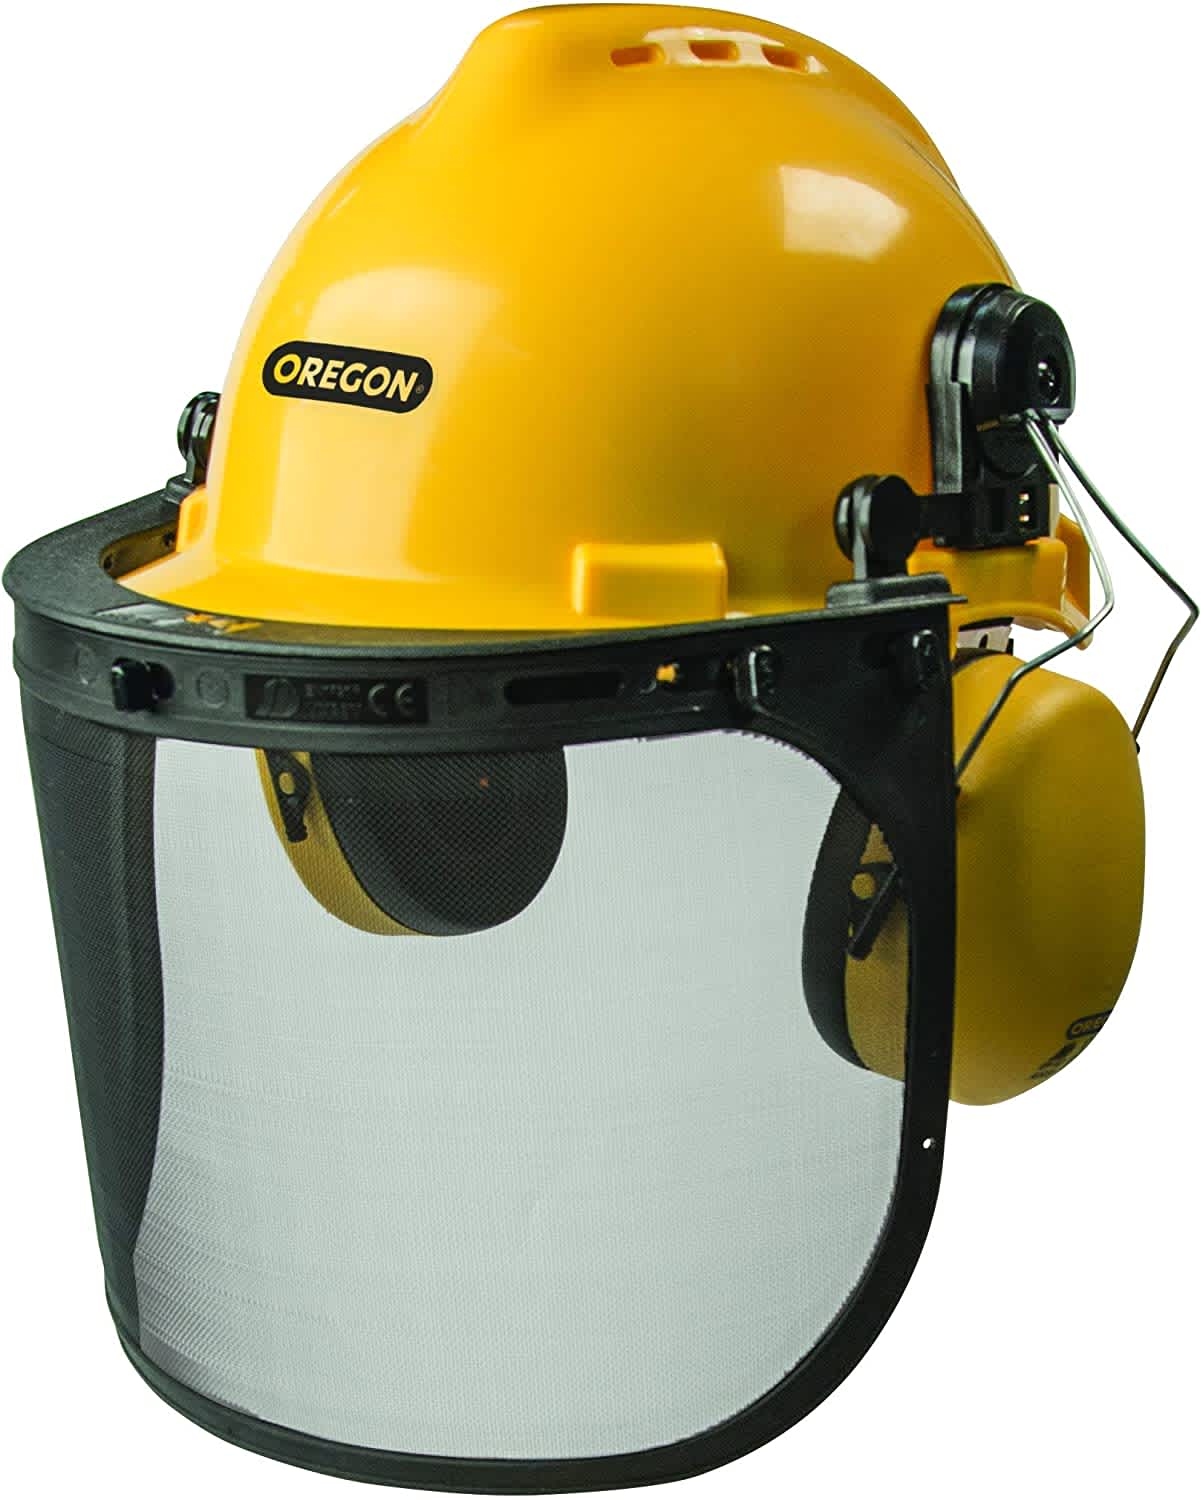 Oregon Chainsaw Safety Protective Helmet With Visor                                                         Oregon Chainsaw Safety Protective Helmet With Visor